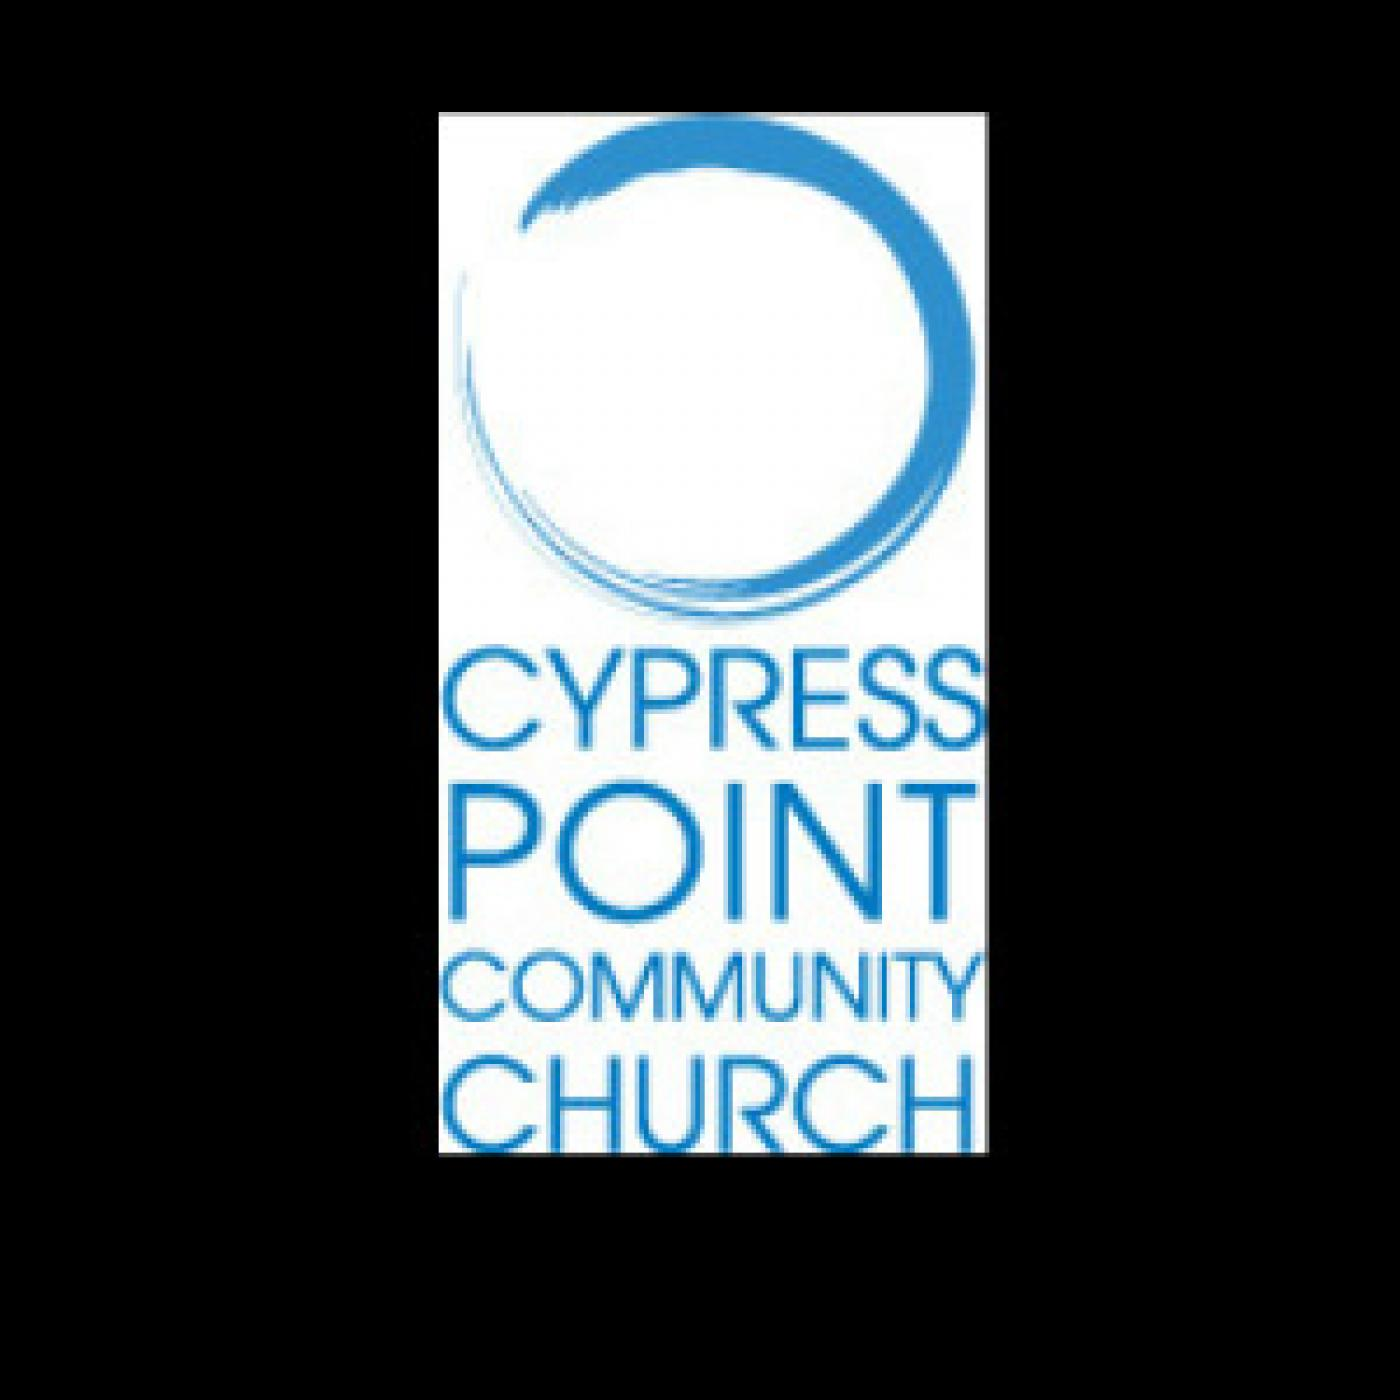 Cypress Point Community Church